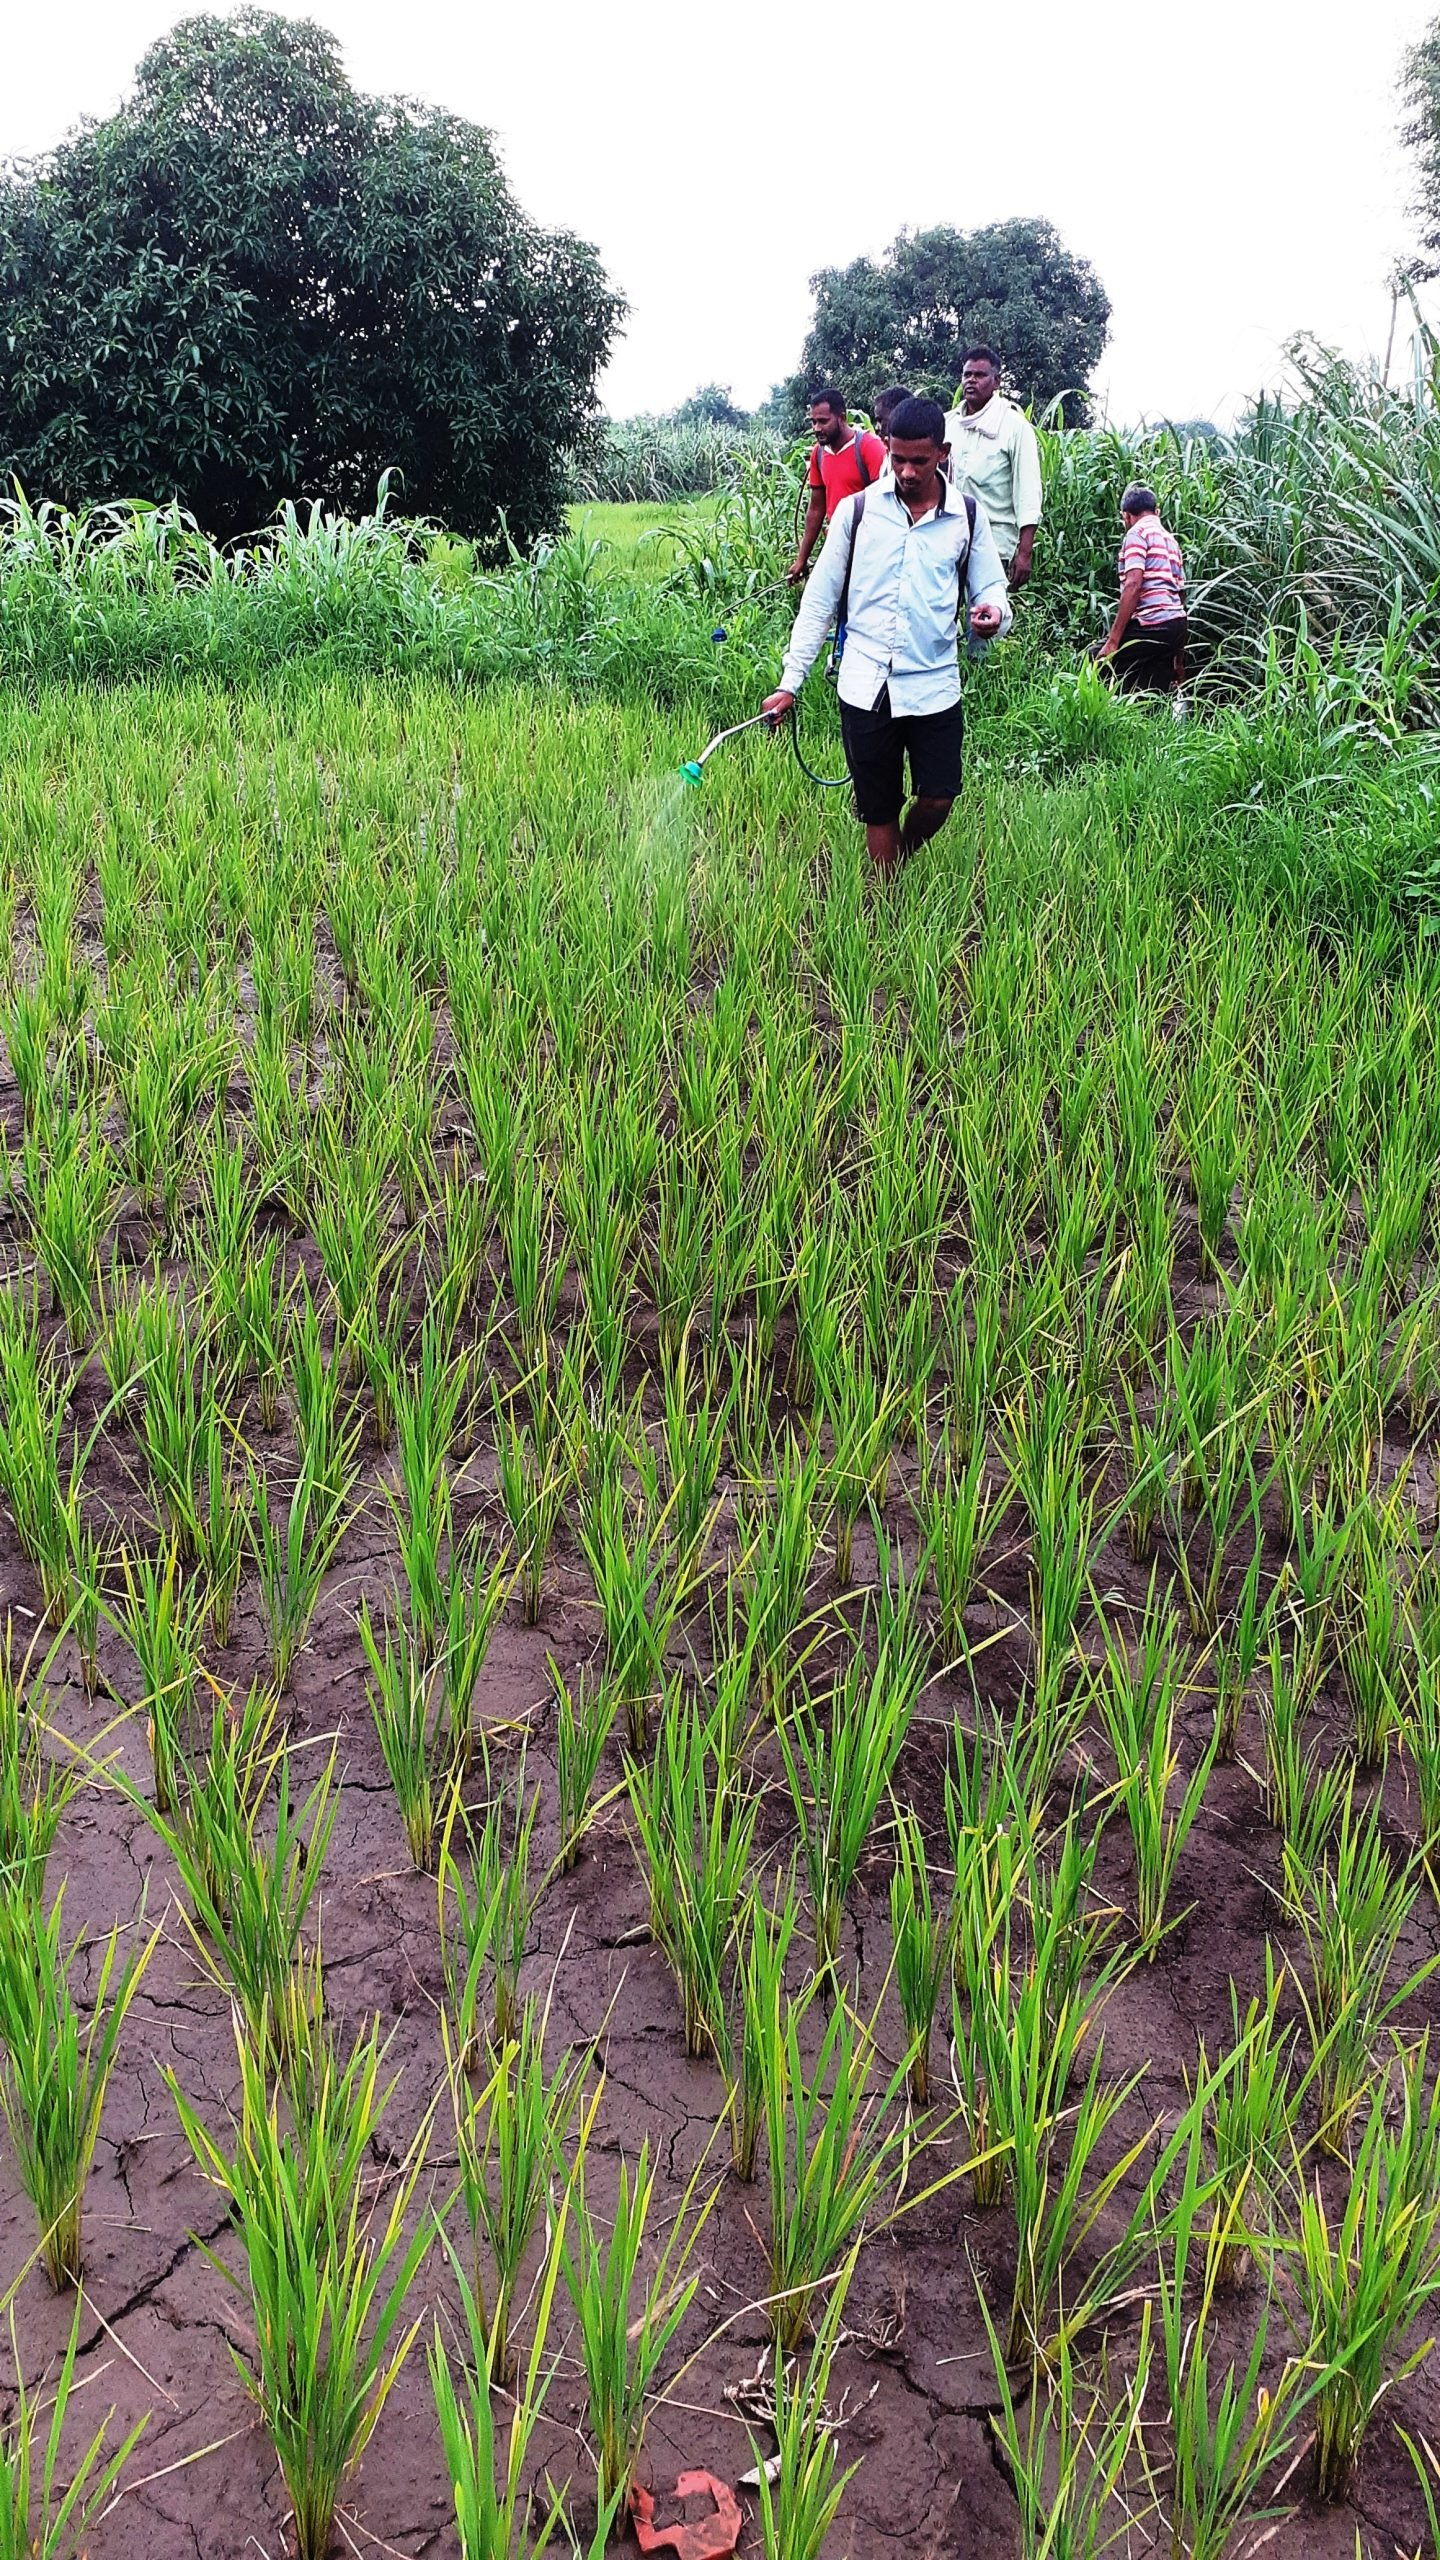 A man spraying pesticides in a paddy field